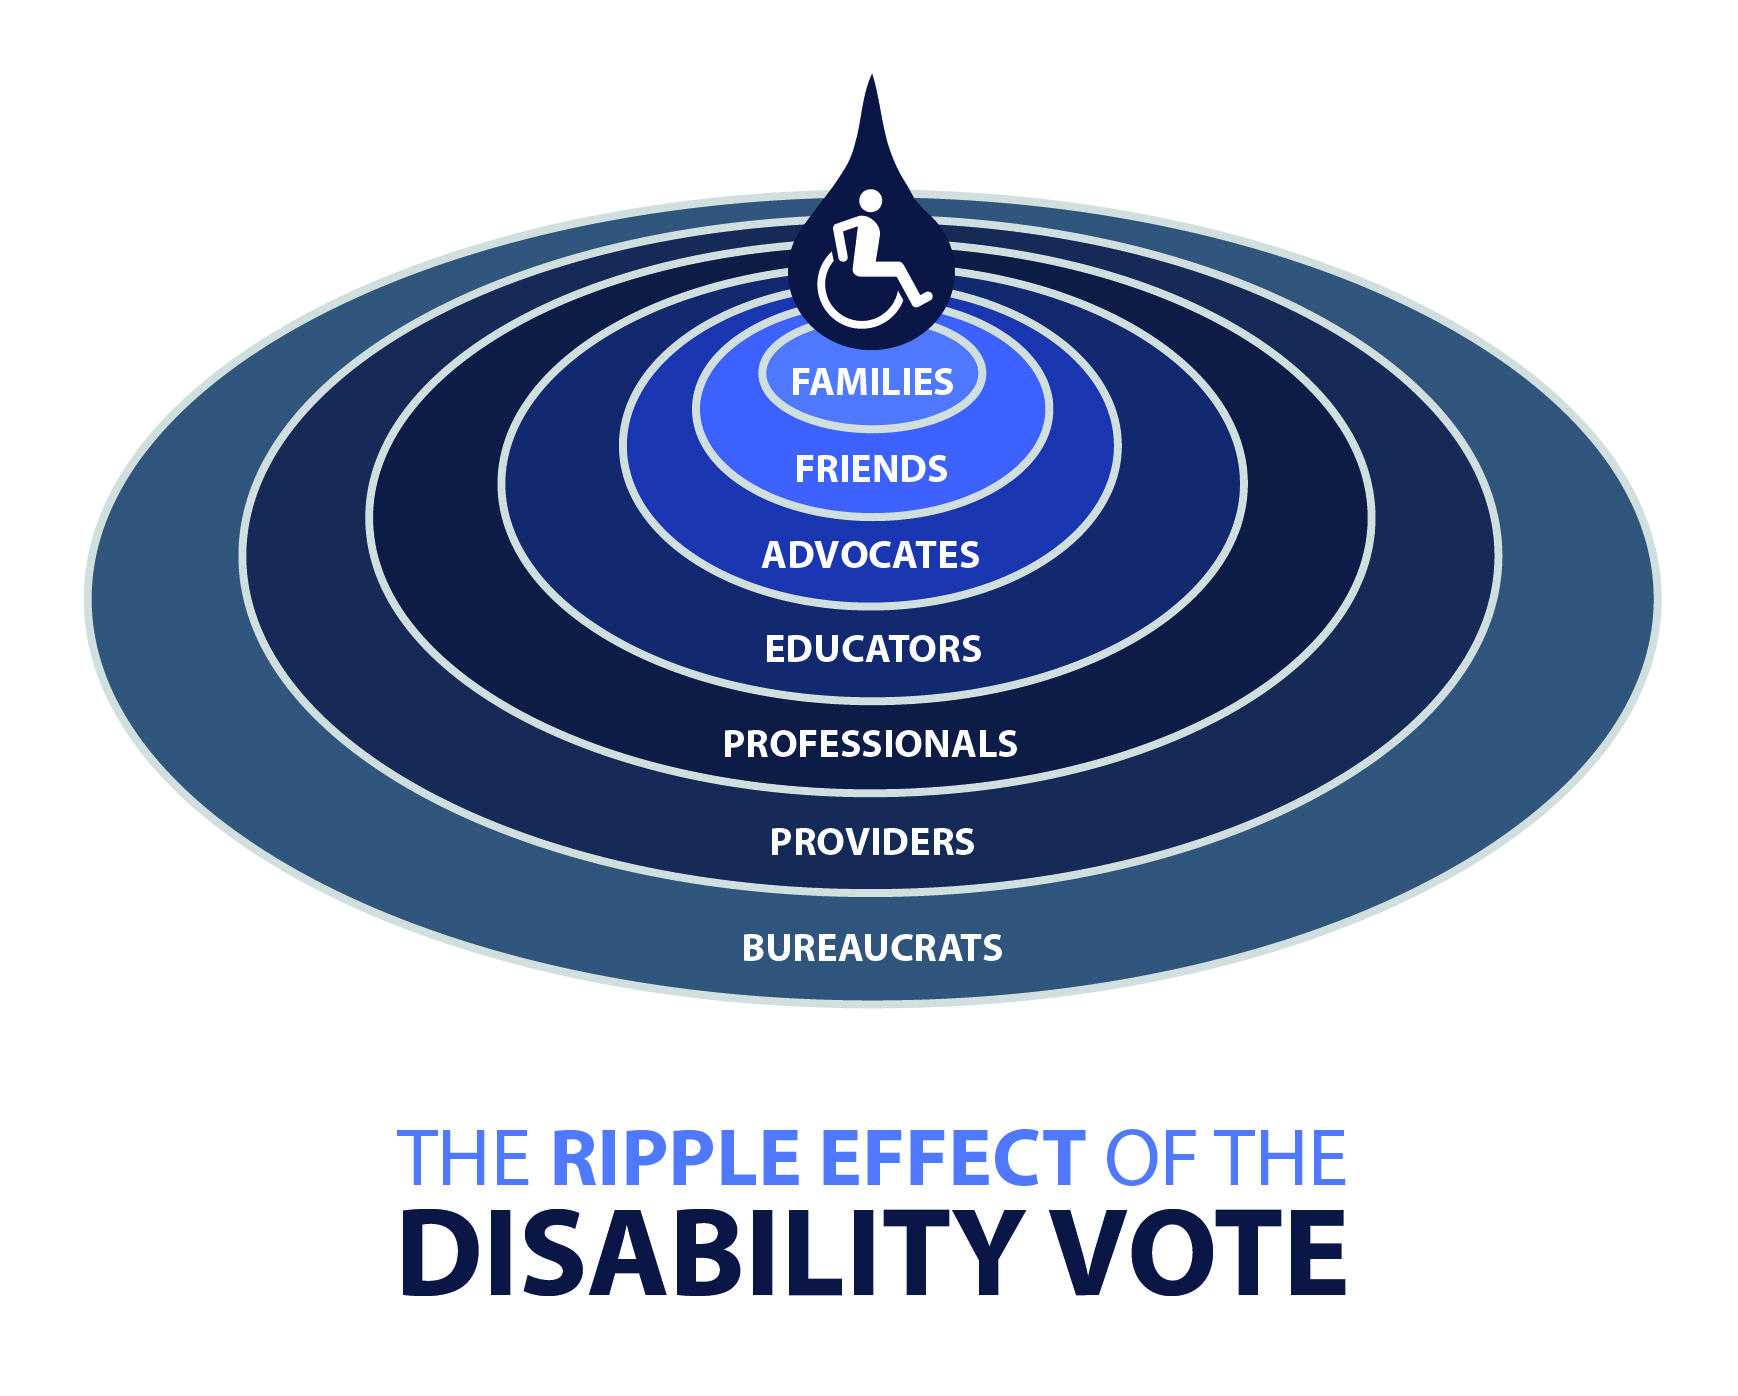 The Ripple Effect of the Disability Vote. Families. Friends. Advocates. Educators. Professionals. Providers. Bureaucrats.